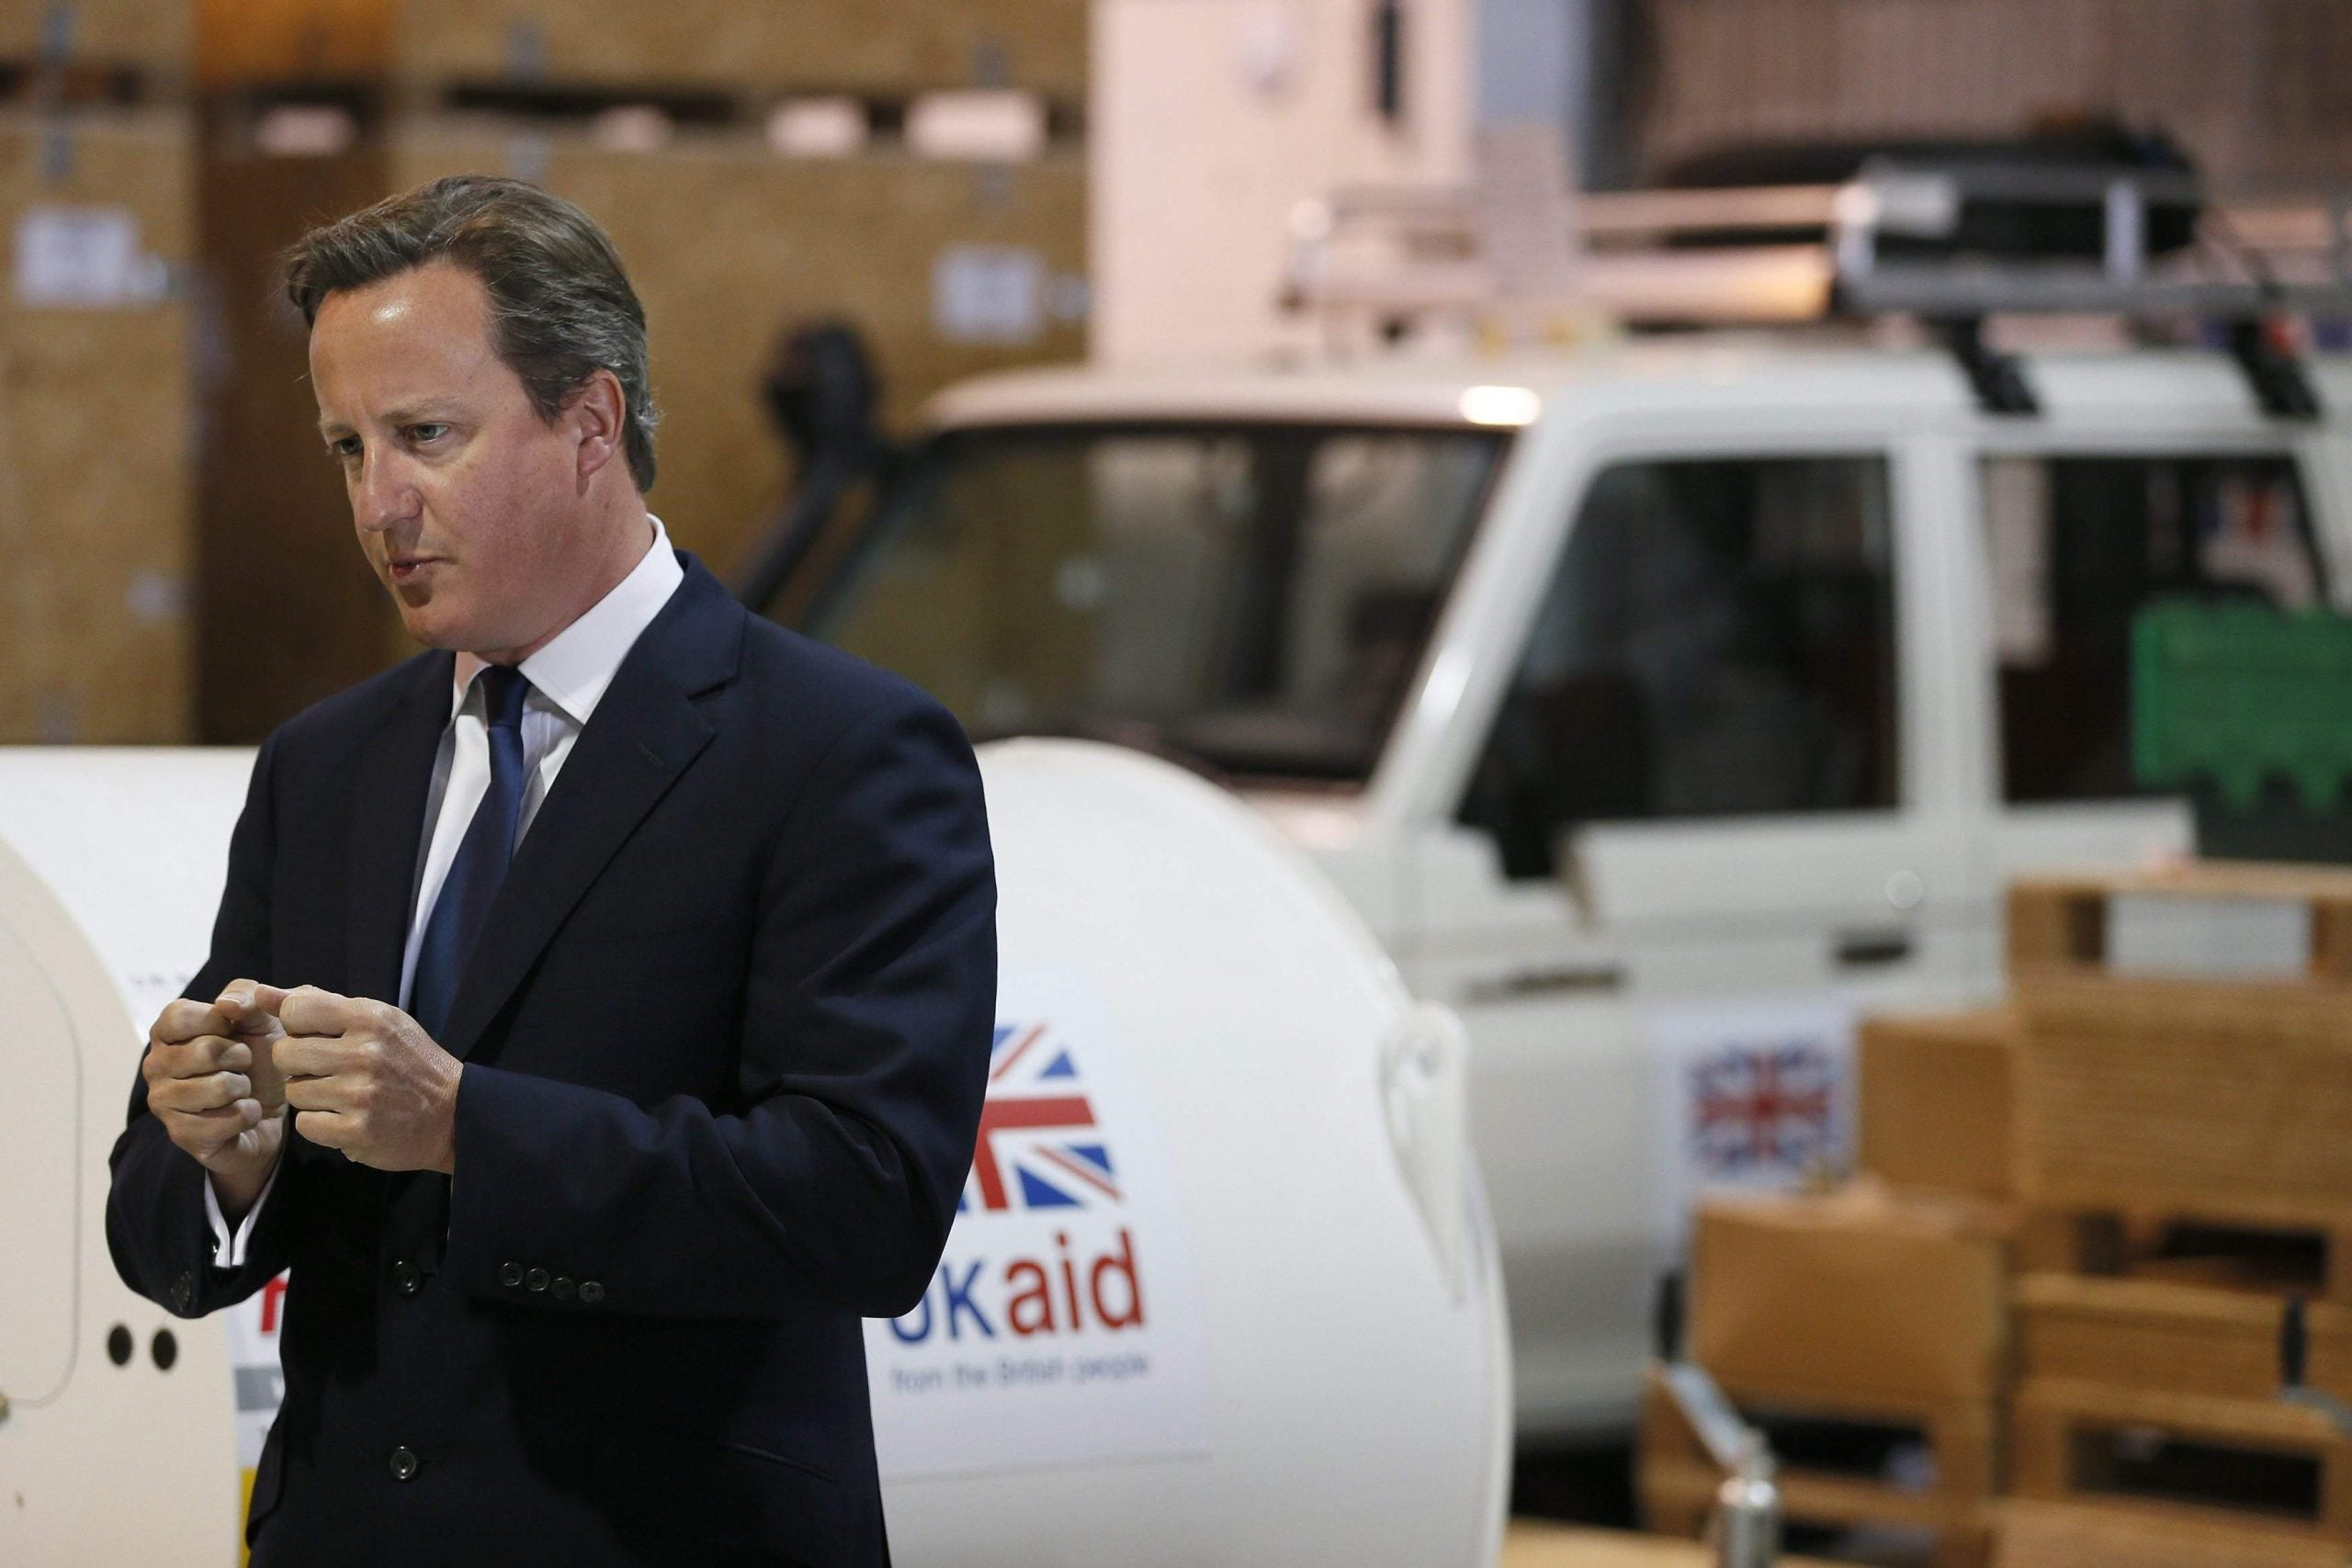 David Cameron and the art of the toe-touch